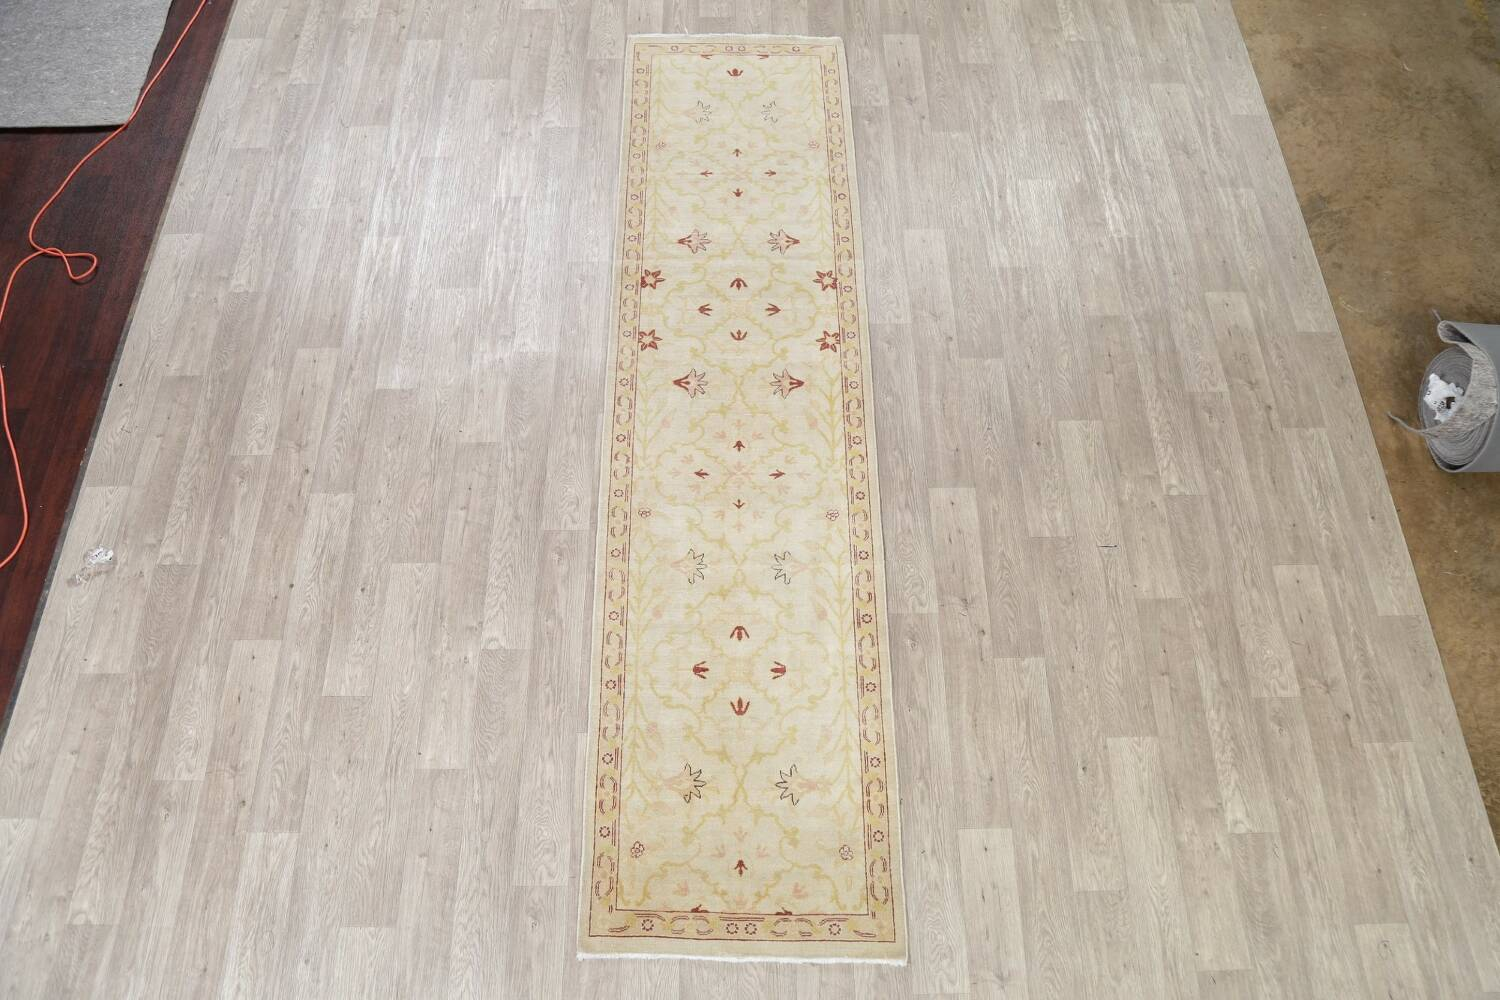 Vegetable Dye Beige Oushak Egyptian Runner Rug 3x11 image 2